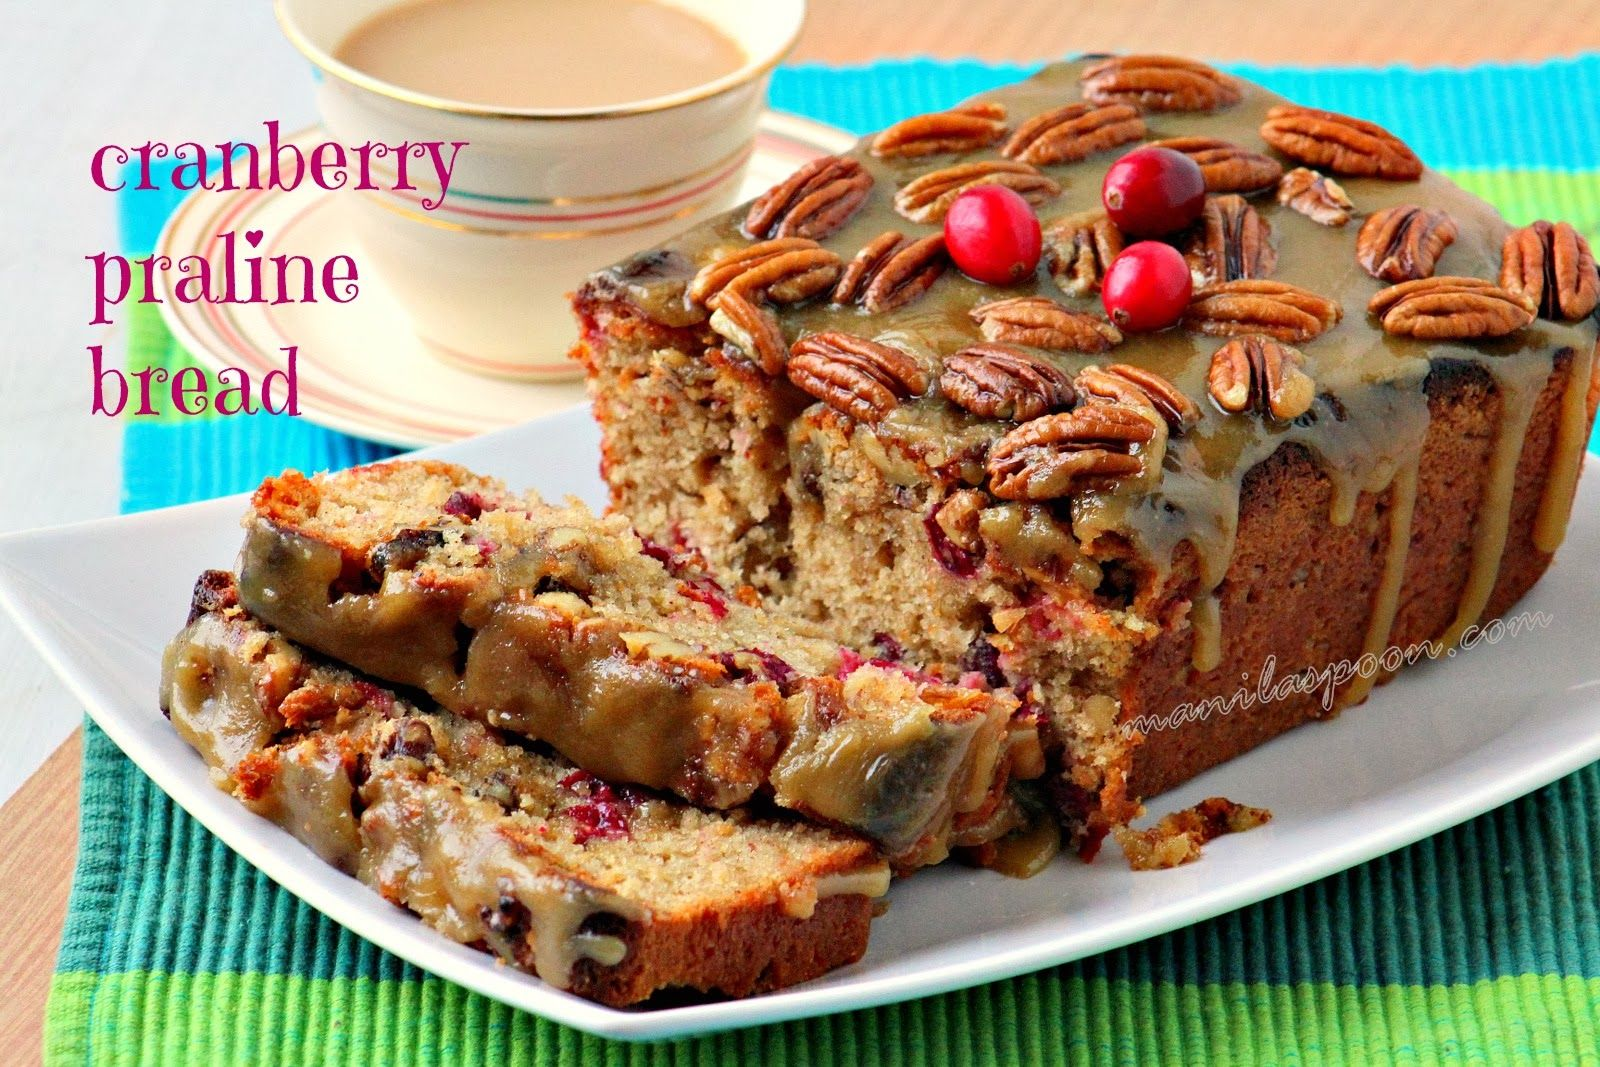 Moist, sweet-tangy, buttery, nutty - hints of deliciousness in every bite PROMISE! #cranberry #praline #bread